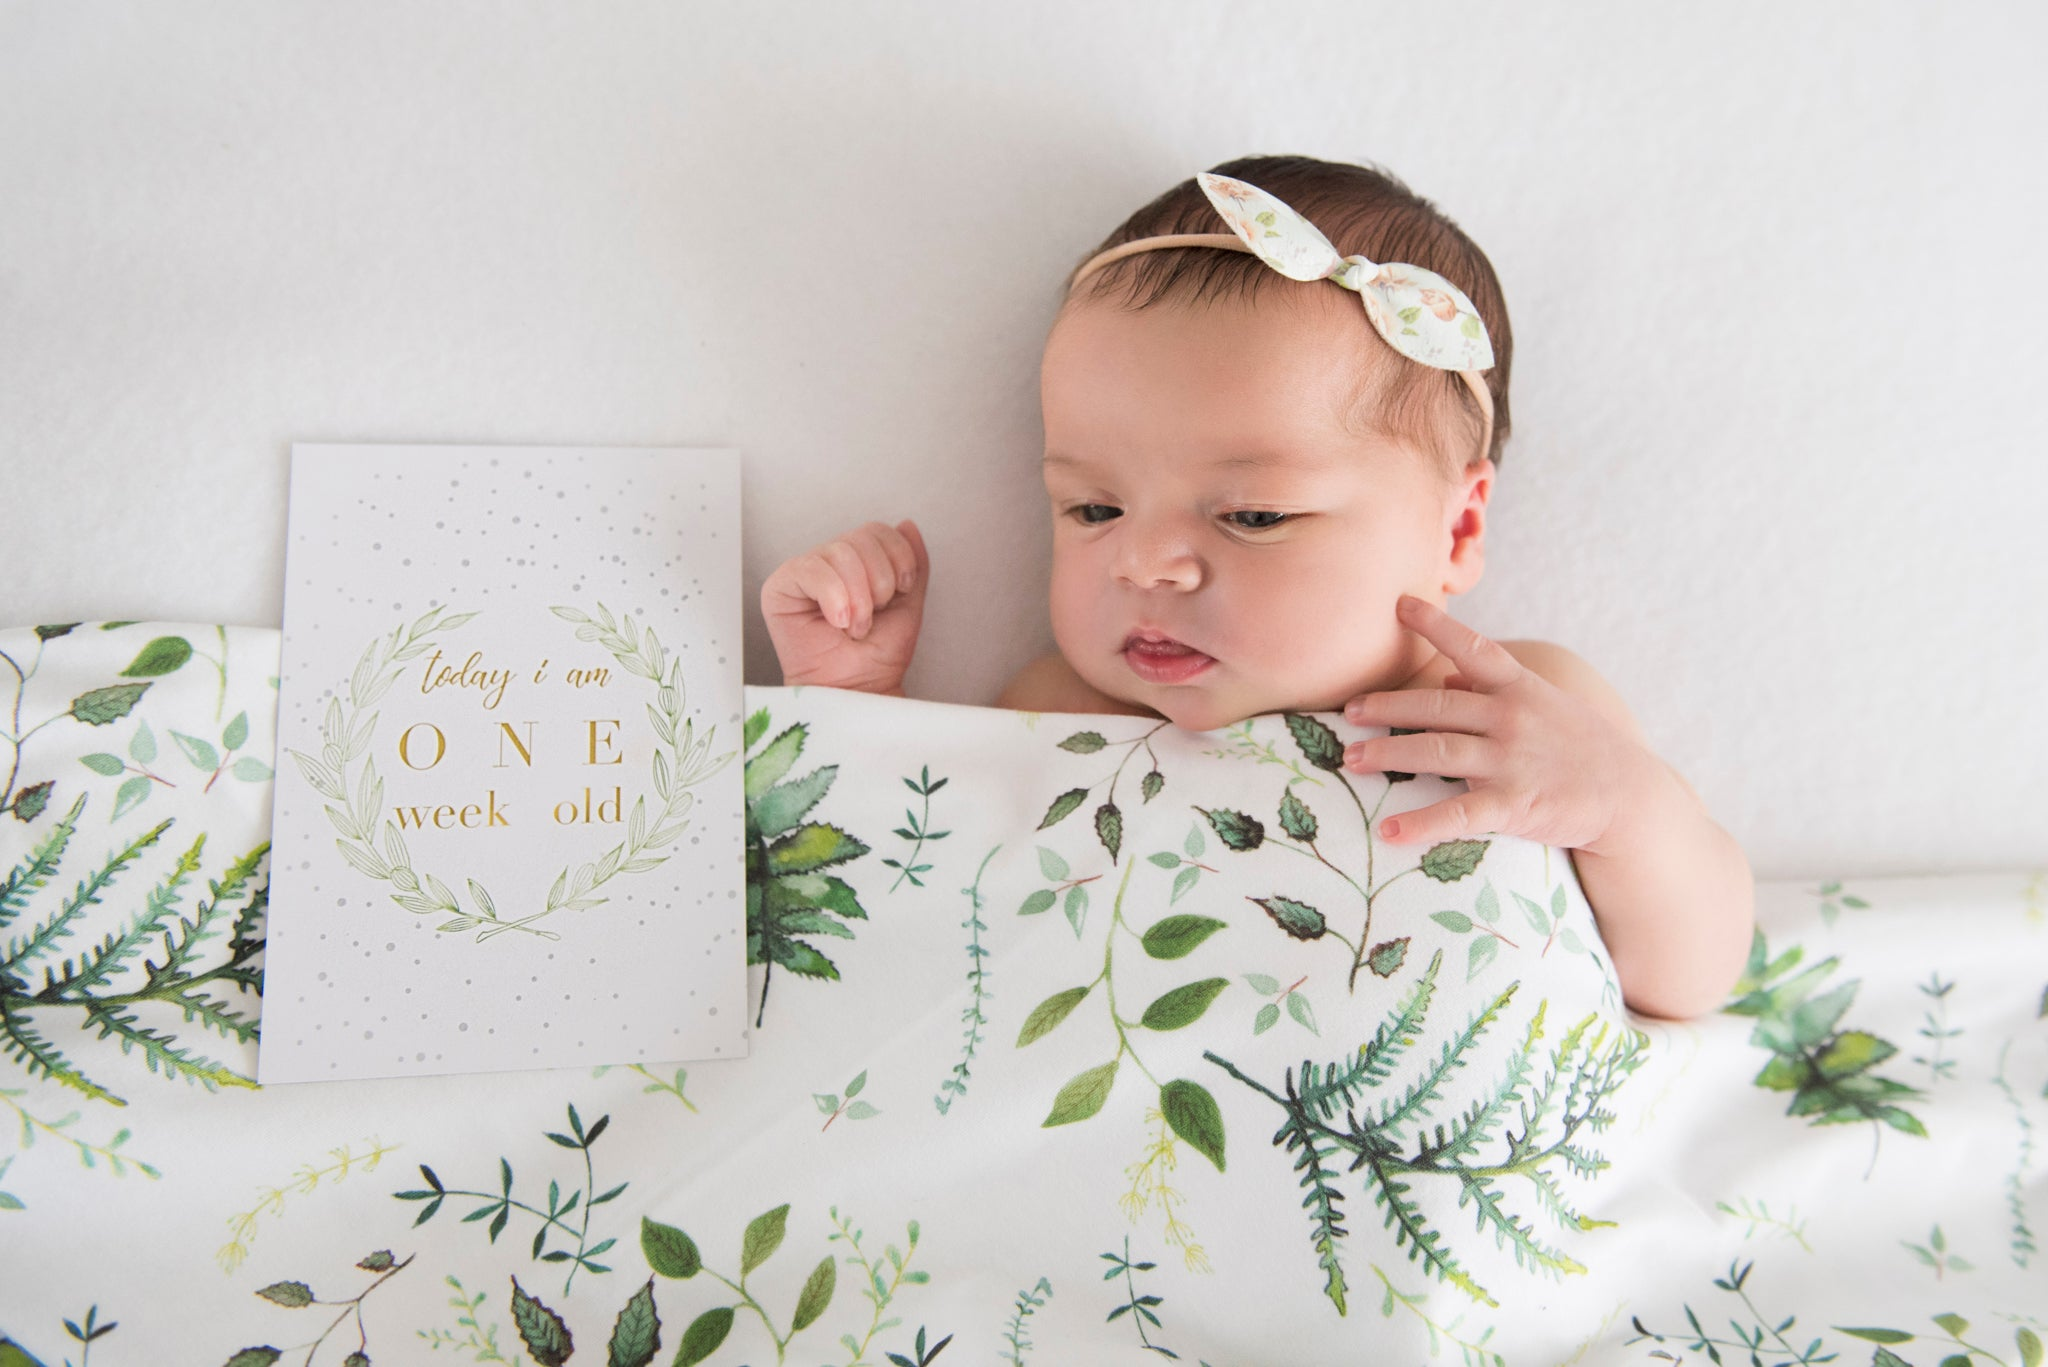 Matching Baby Wrap + Milestone Cards Set   |   Enchanted Spring Stylish Baby Milestone Cards + Baby Announcement Baby Wraps + swaddles - - AfterPay - Free Shipping - lovepaperink.com.au